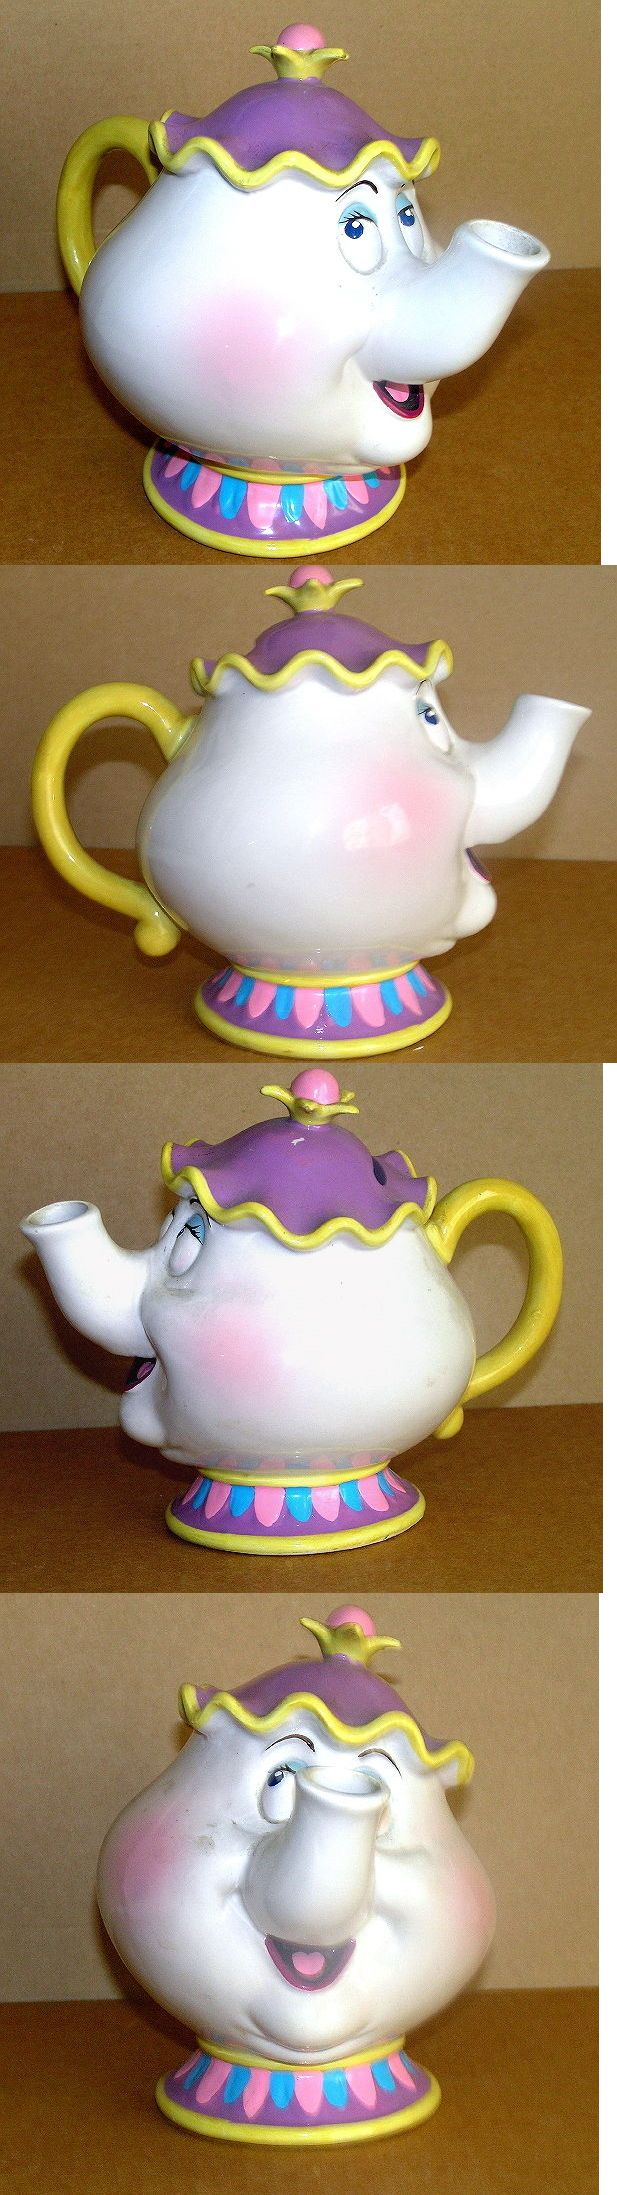 Beauty and the Beast 44033: Disney S Beauty And The Beast 1990 Mrs Potts China Teapot Coin Bank Rare Retired -> BUY IT NOW ONLY: $34.98 on eBay!